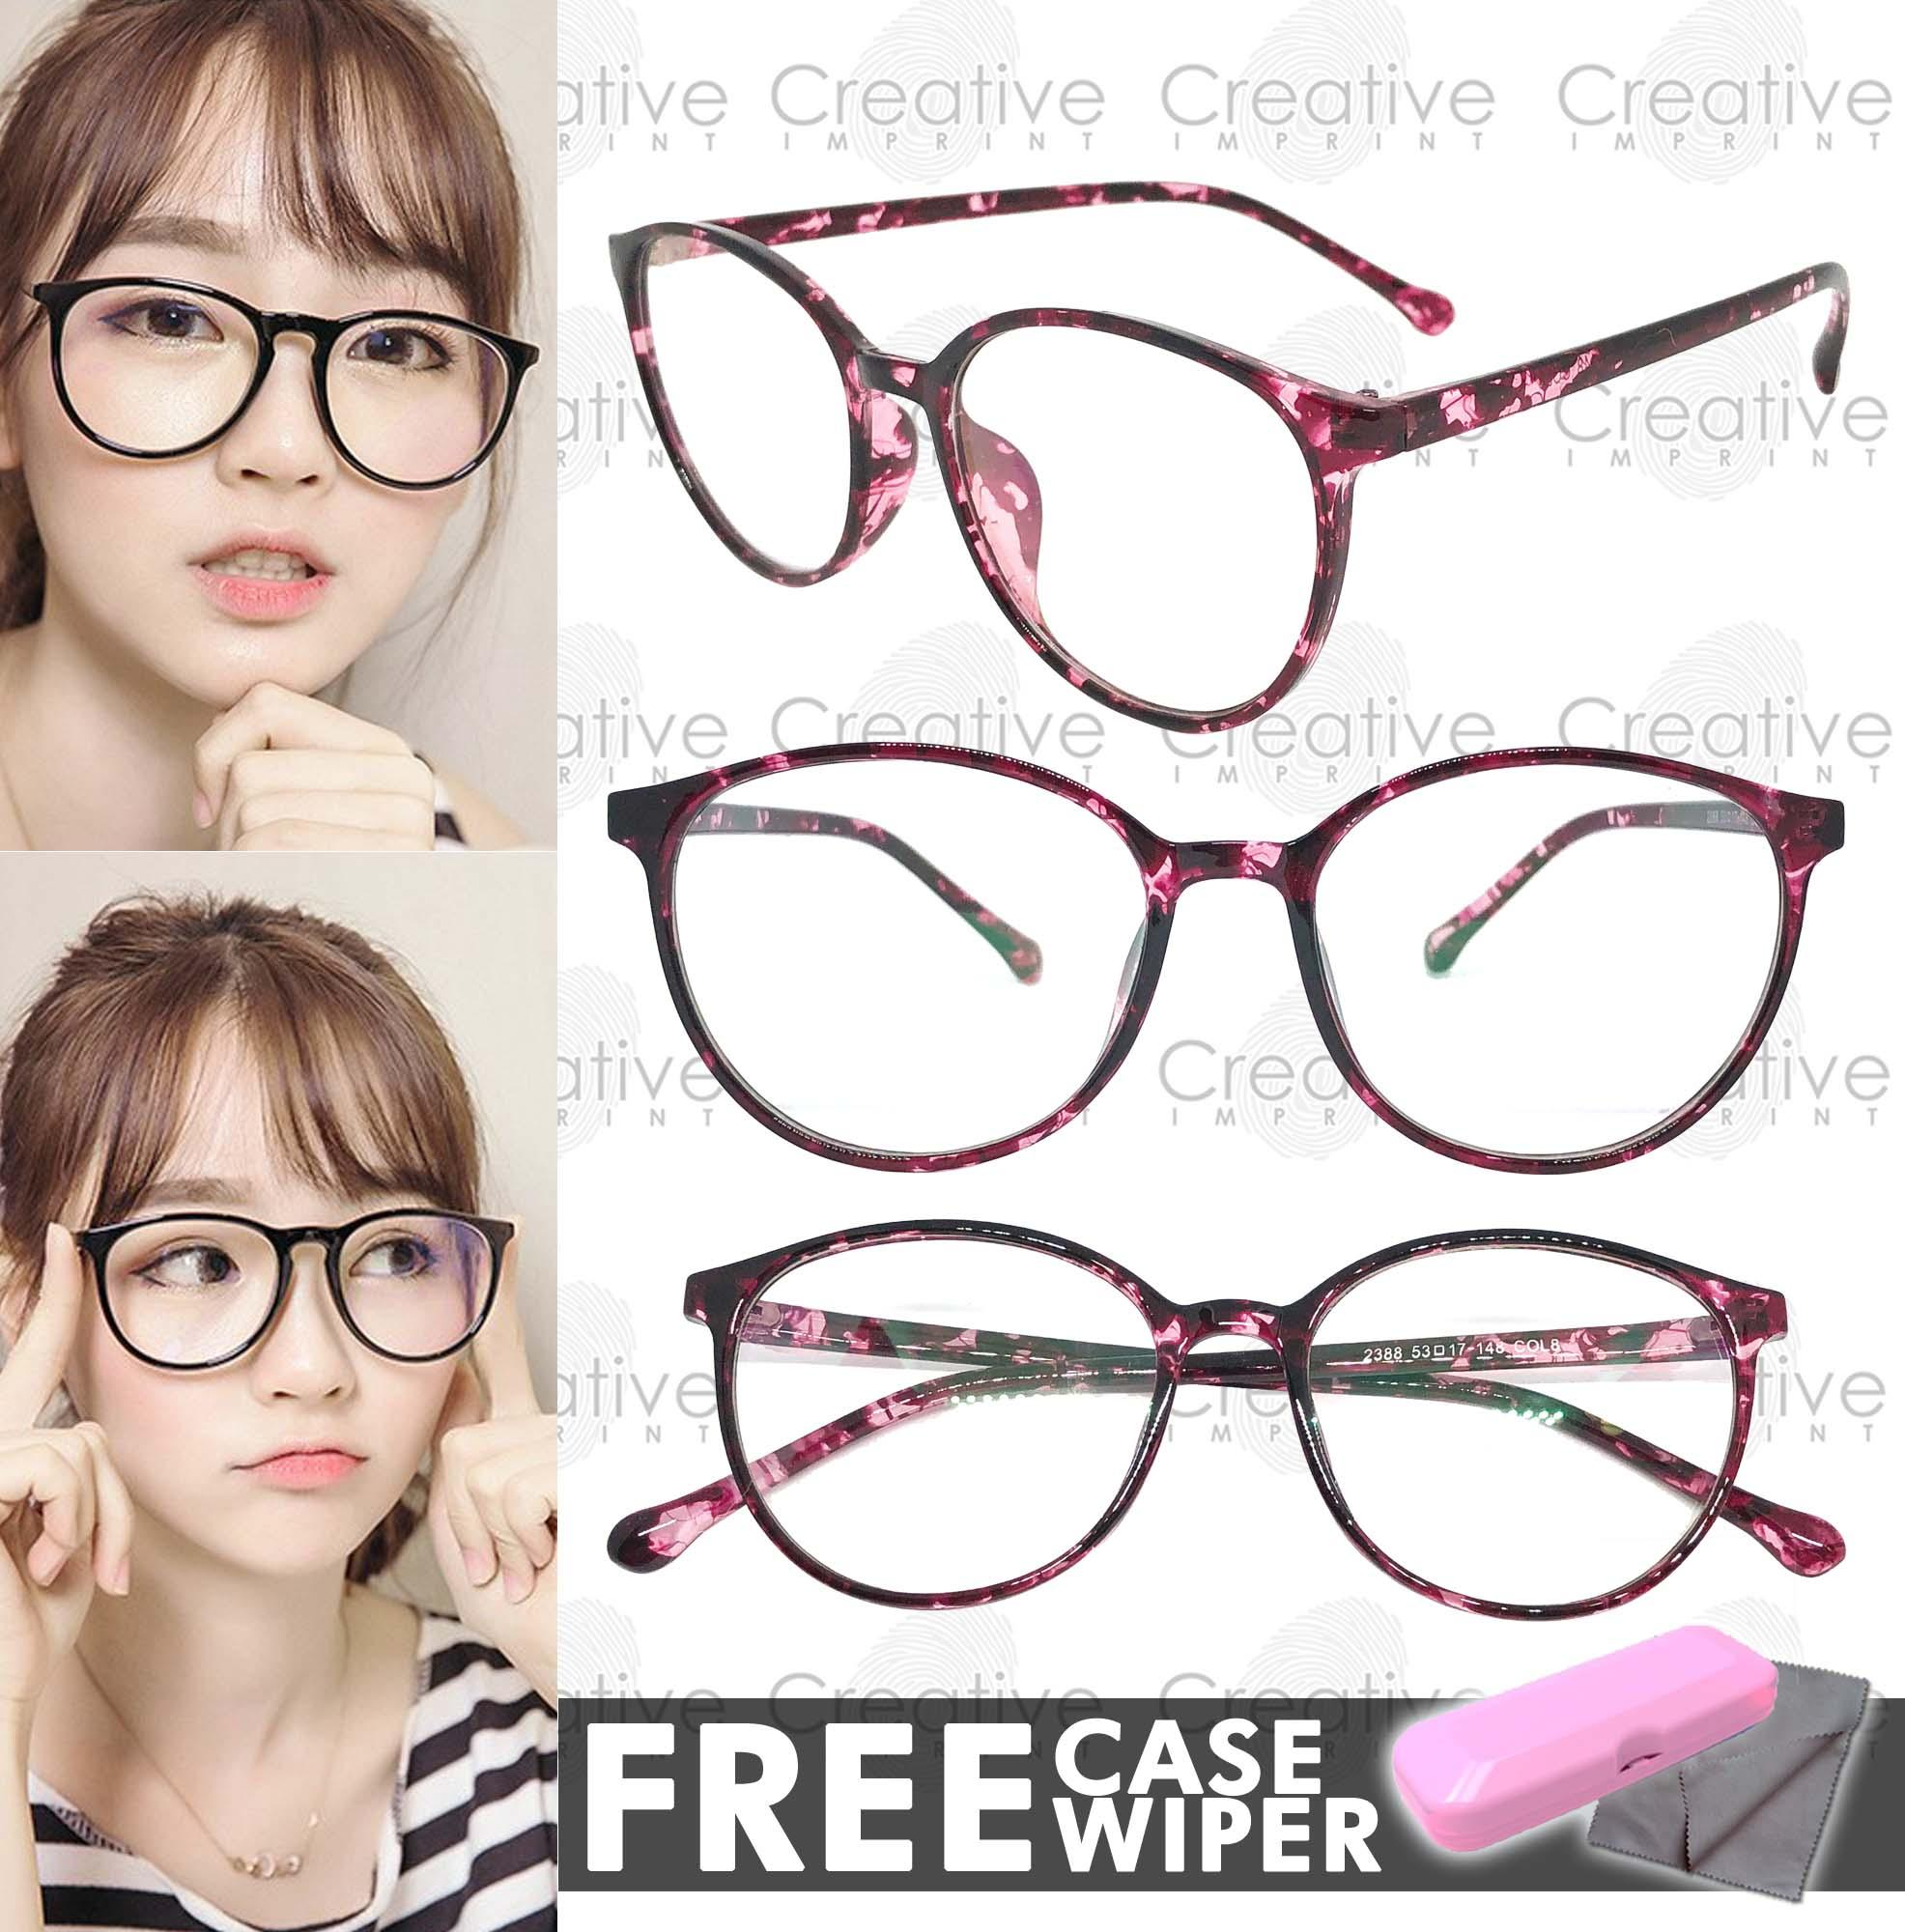 0e36d1614ba Creative Imprint Eyeglasses Anti-Radiation Lens ( 05 Animal Print Purple)  Anti-